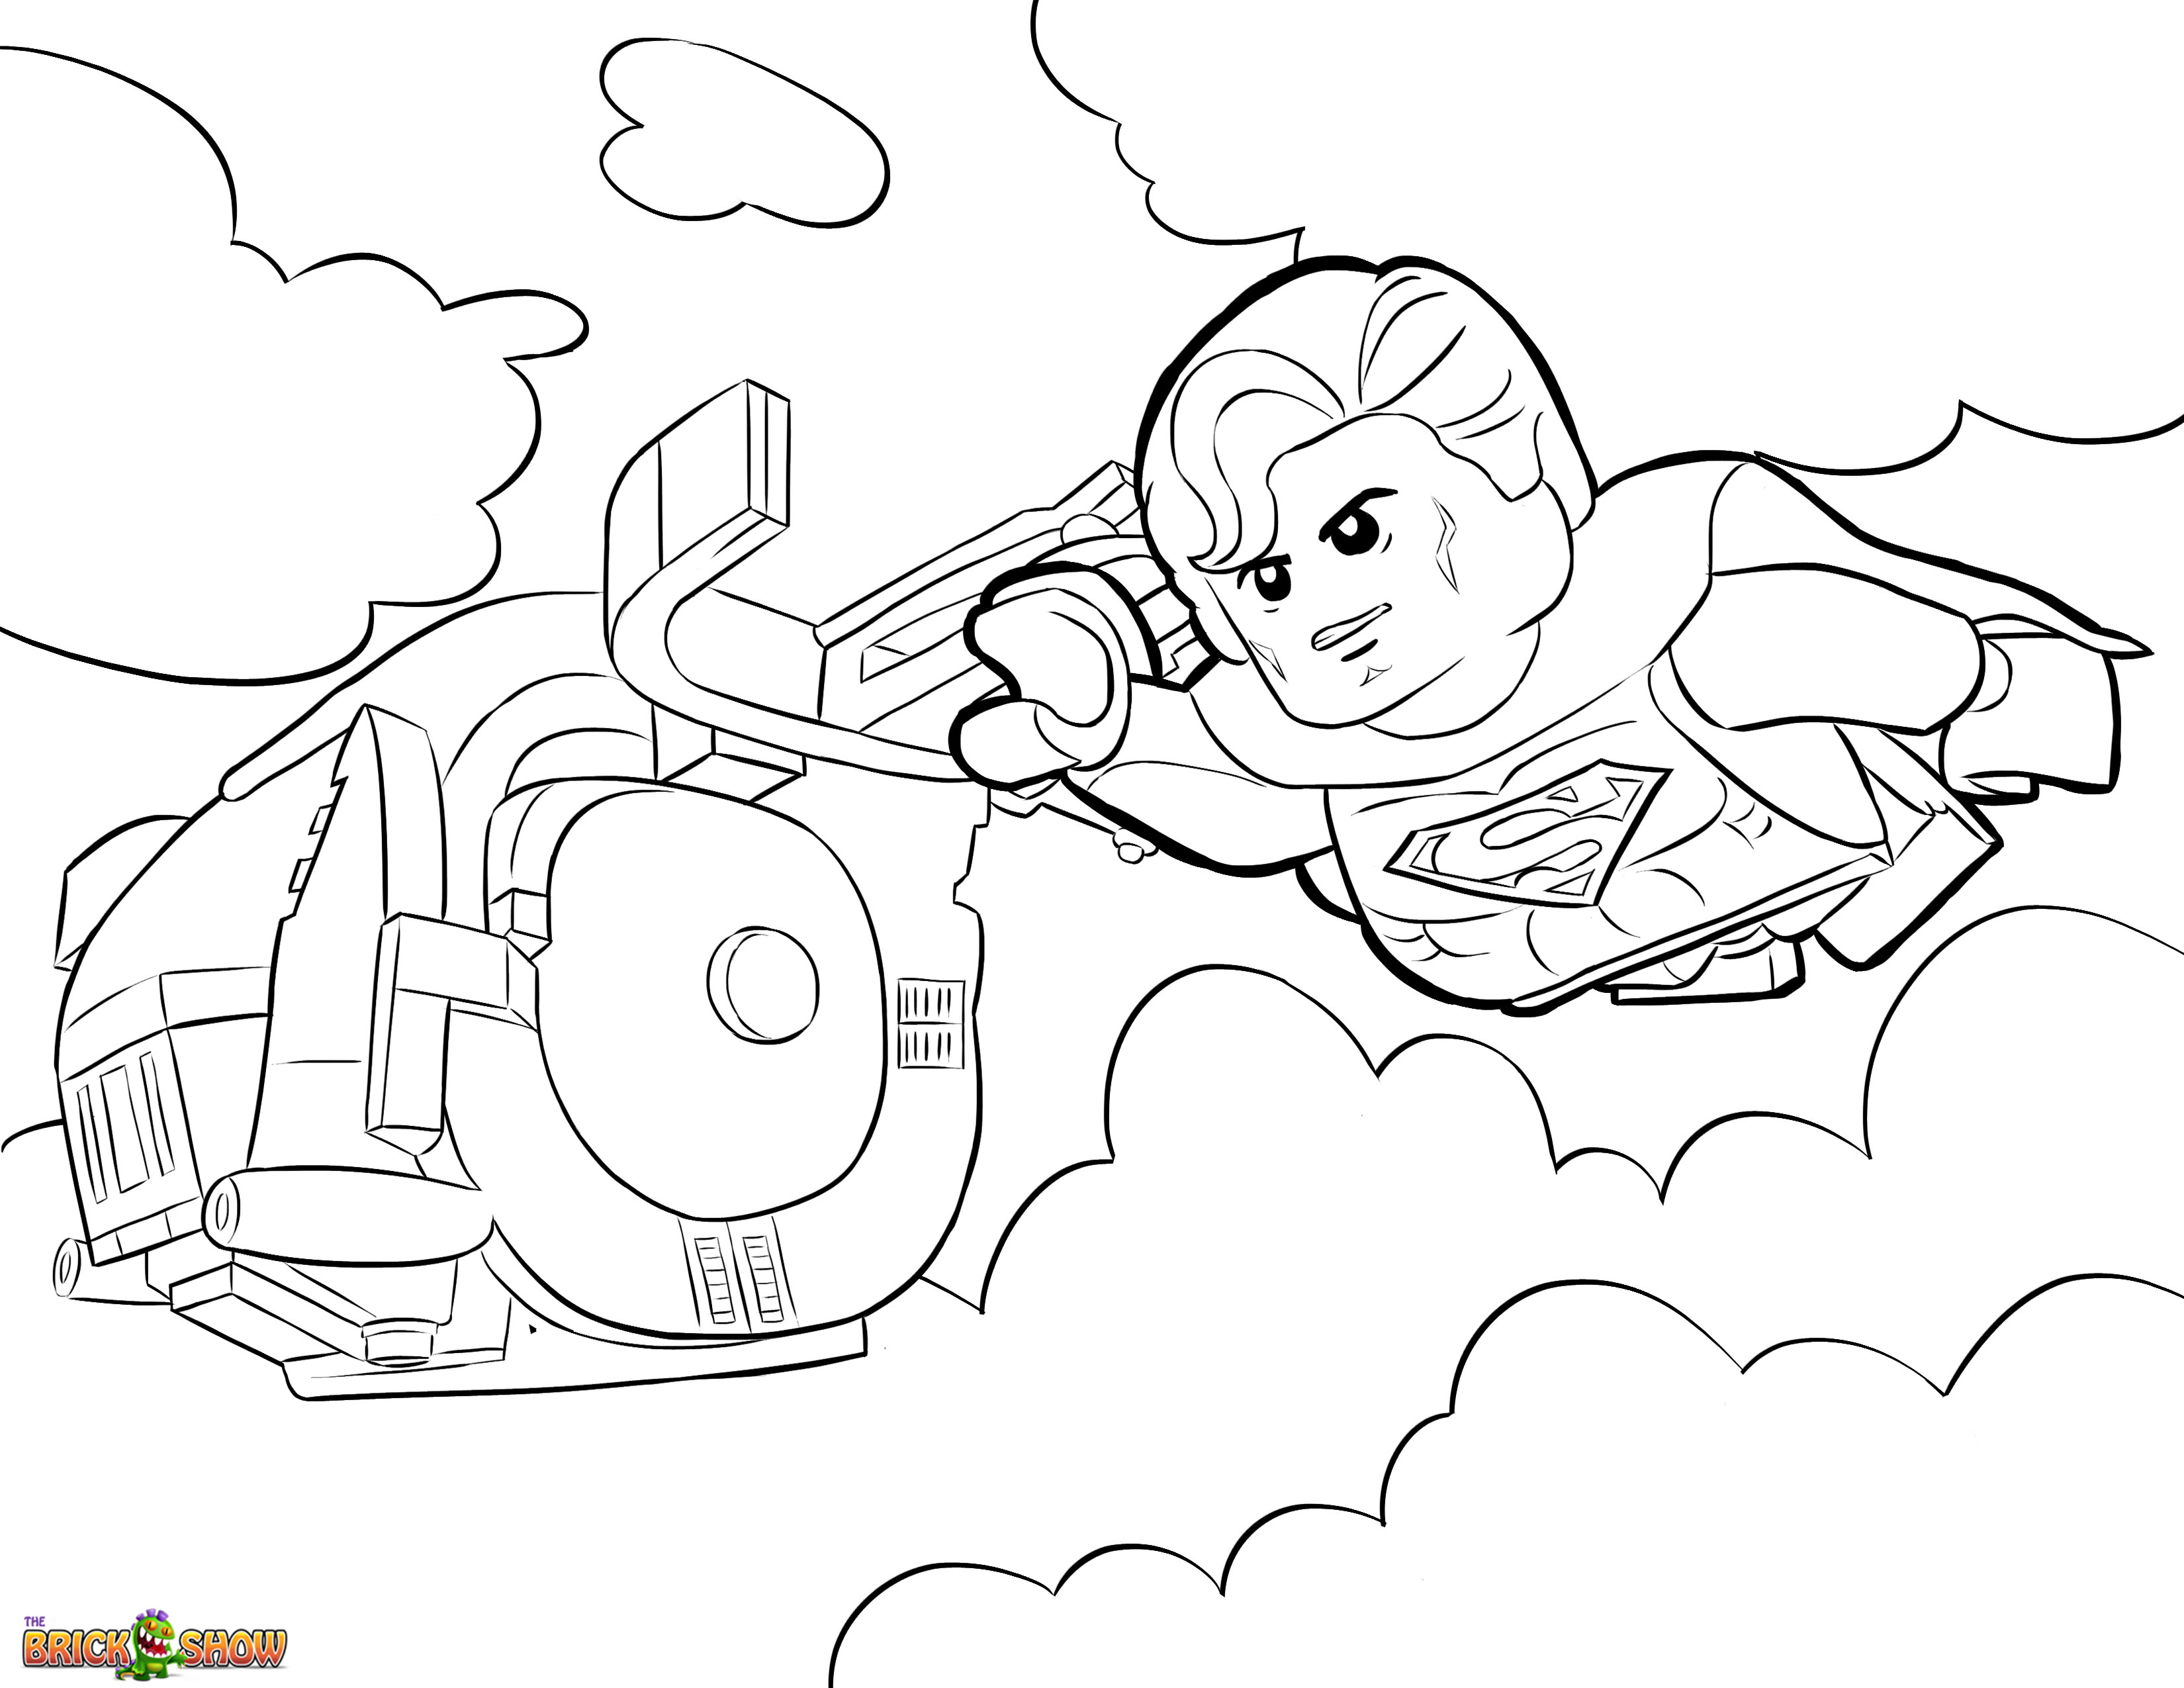 This is an image of Superman Printable Coloring Pages intended for simple